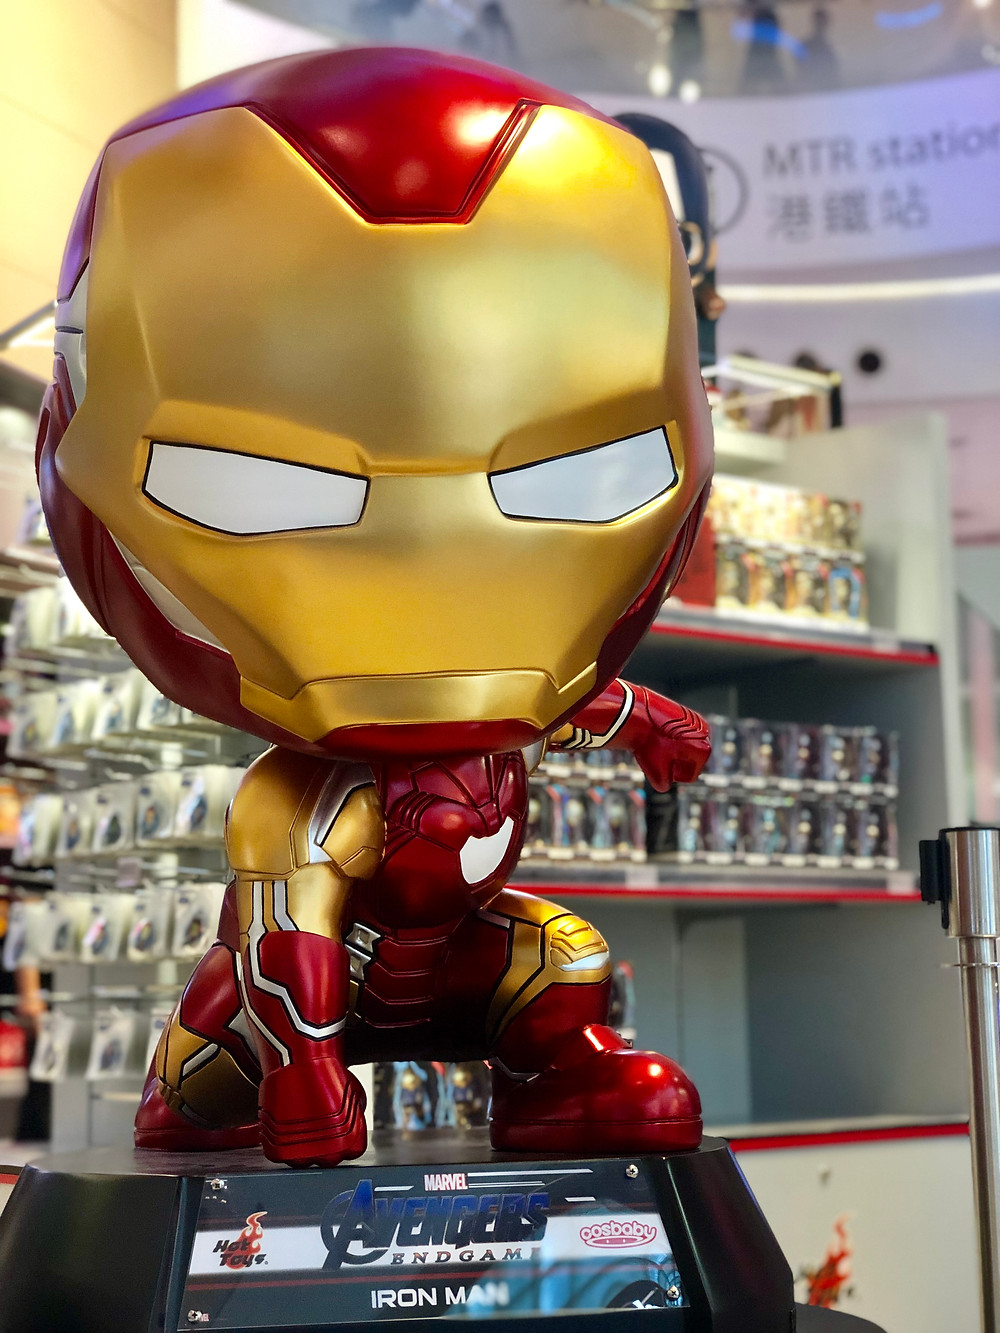 Hong Kong Avengers Endgame Exhibition Iron Man figure pop-up store